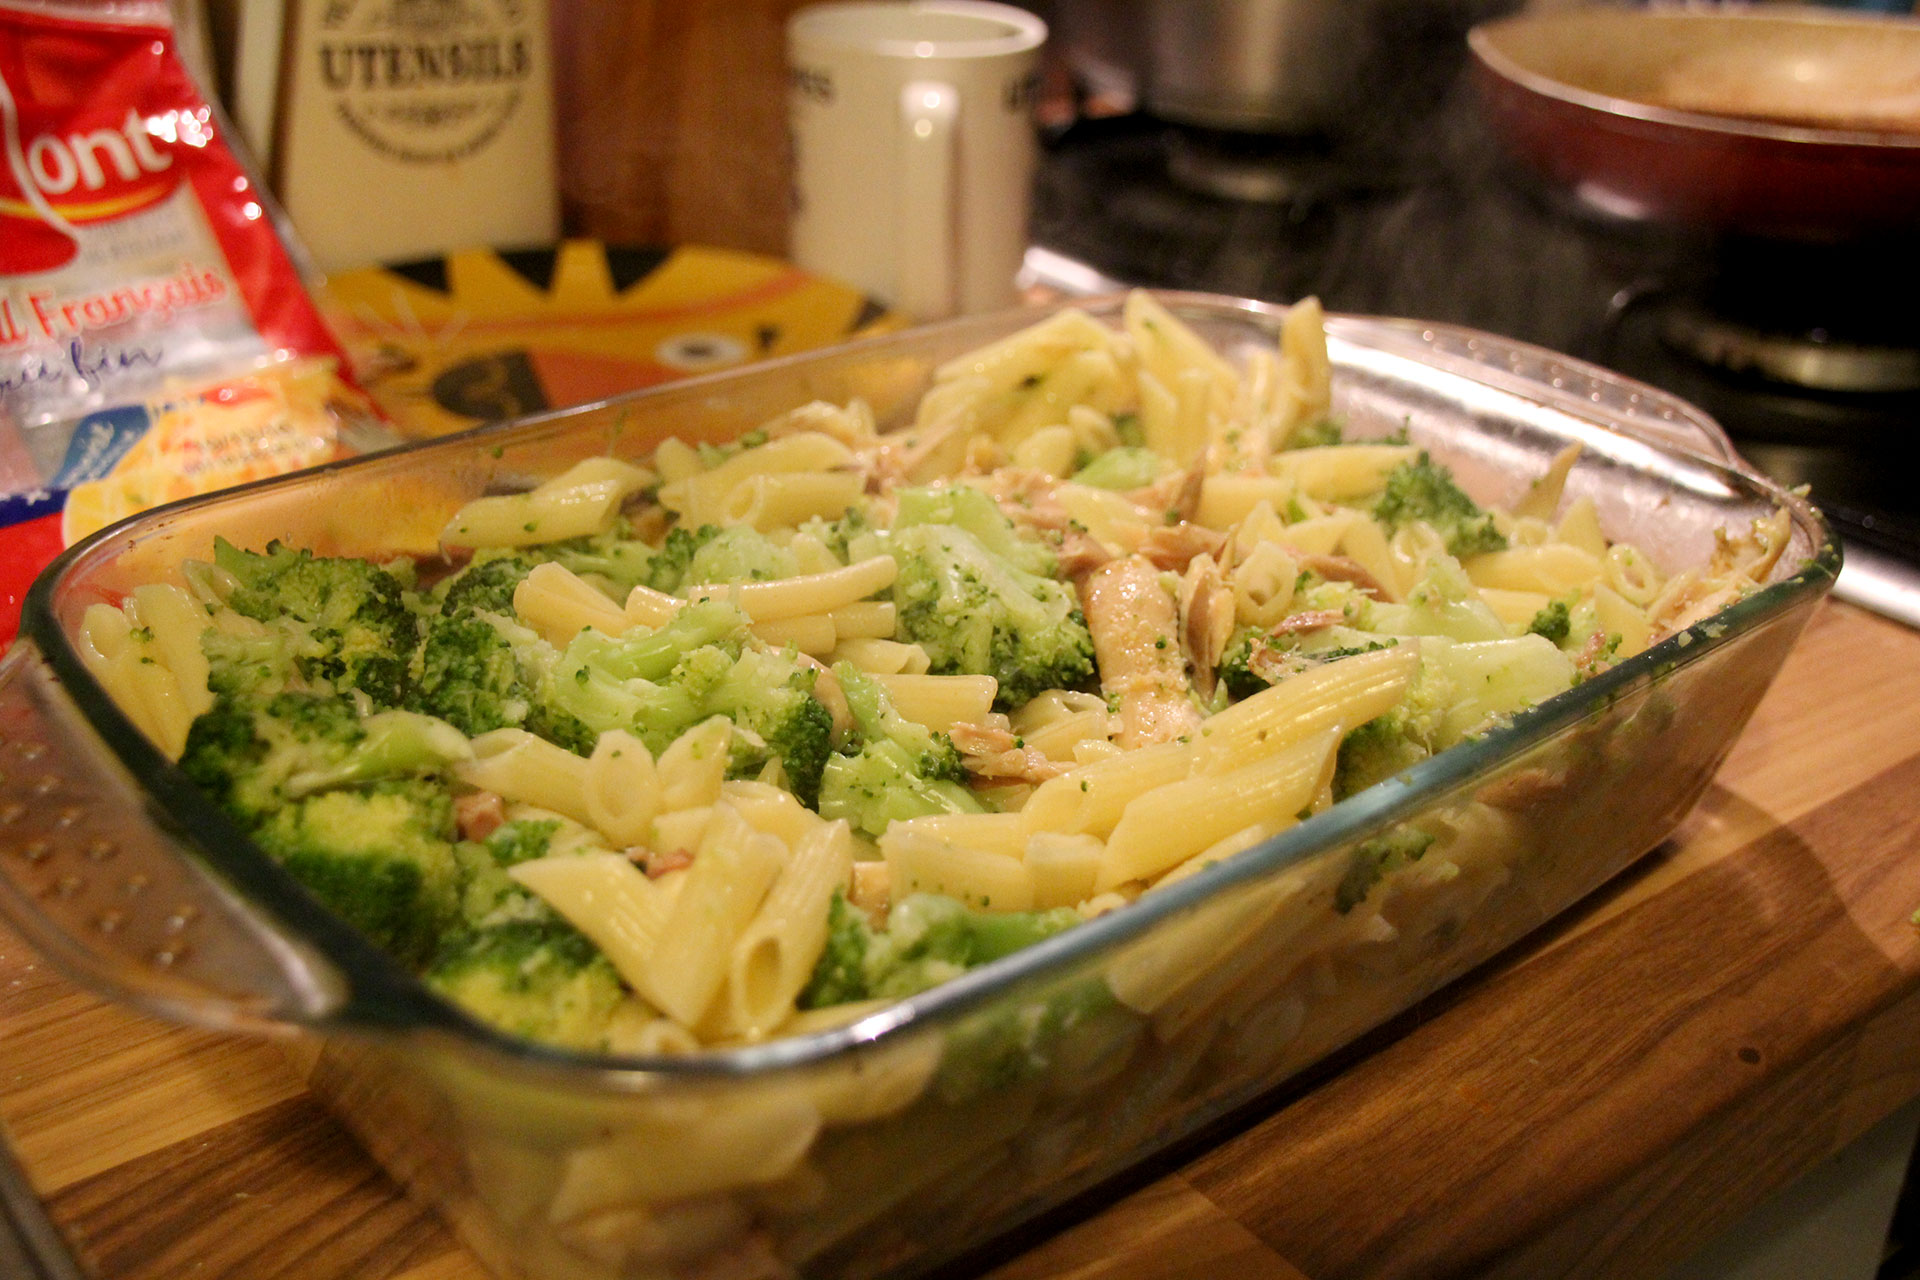 Pasta bake without the bechamel